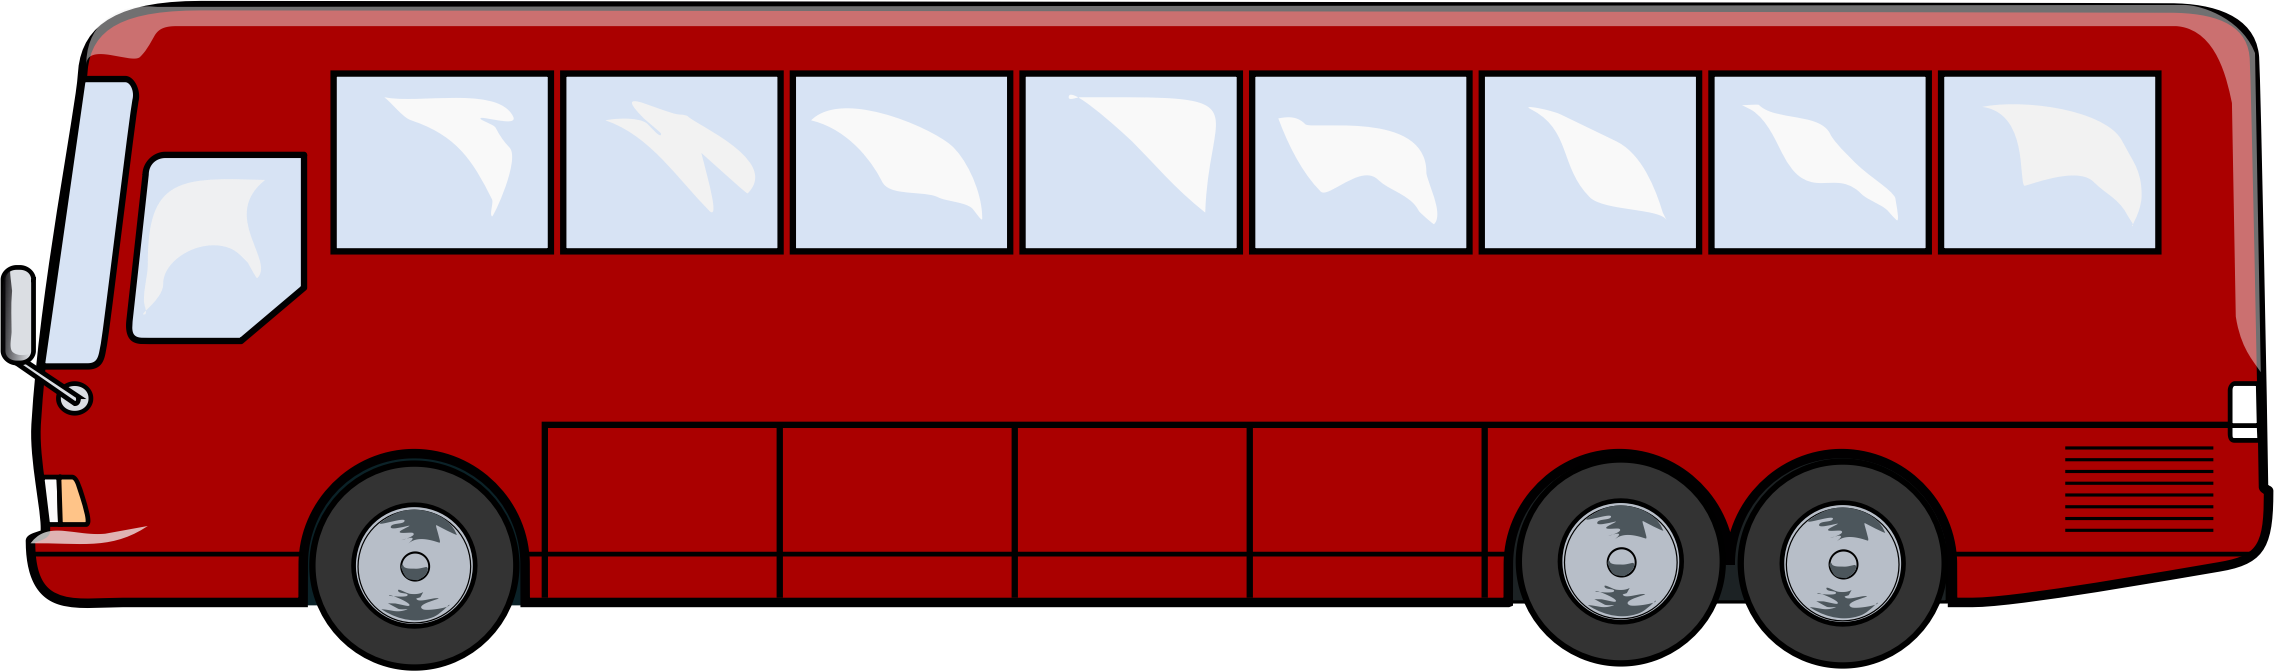 City Bus Side View PNG - 54584